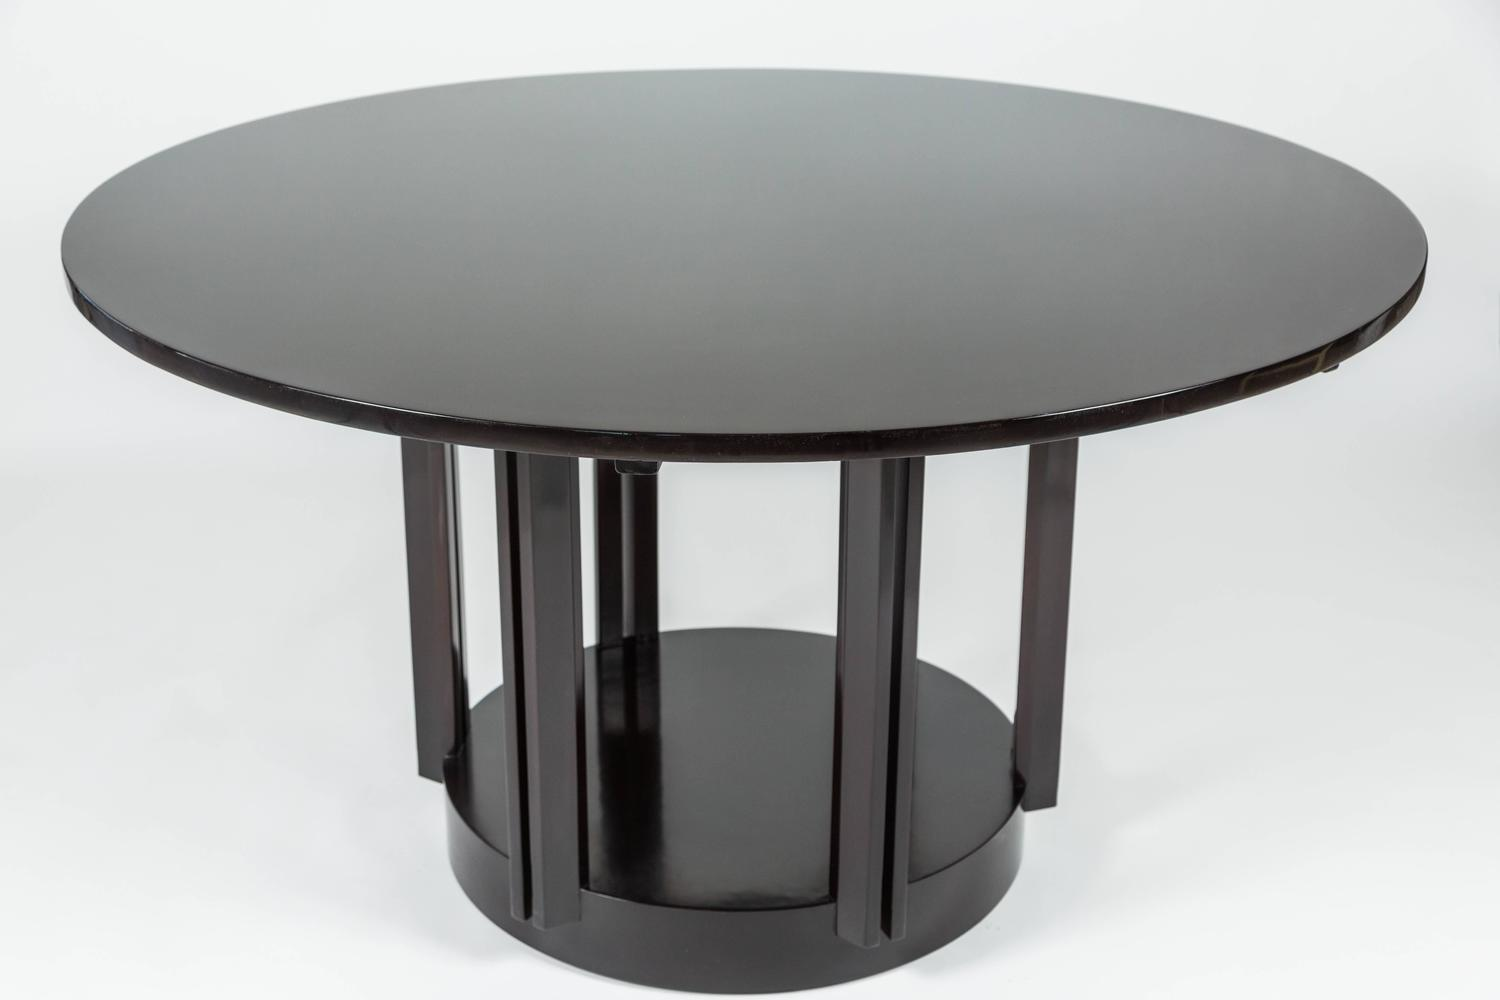 Fantastic modern round dining table by eliel saarinen for for Eliel saarinen furniture